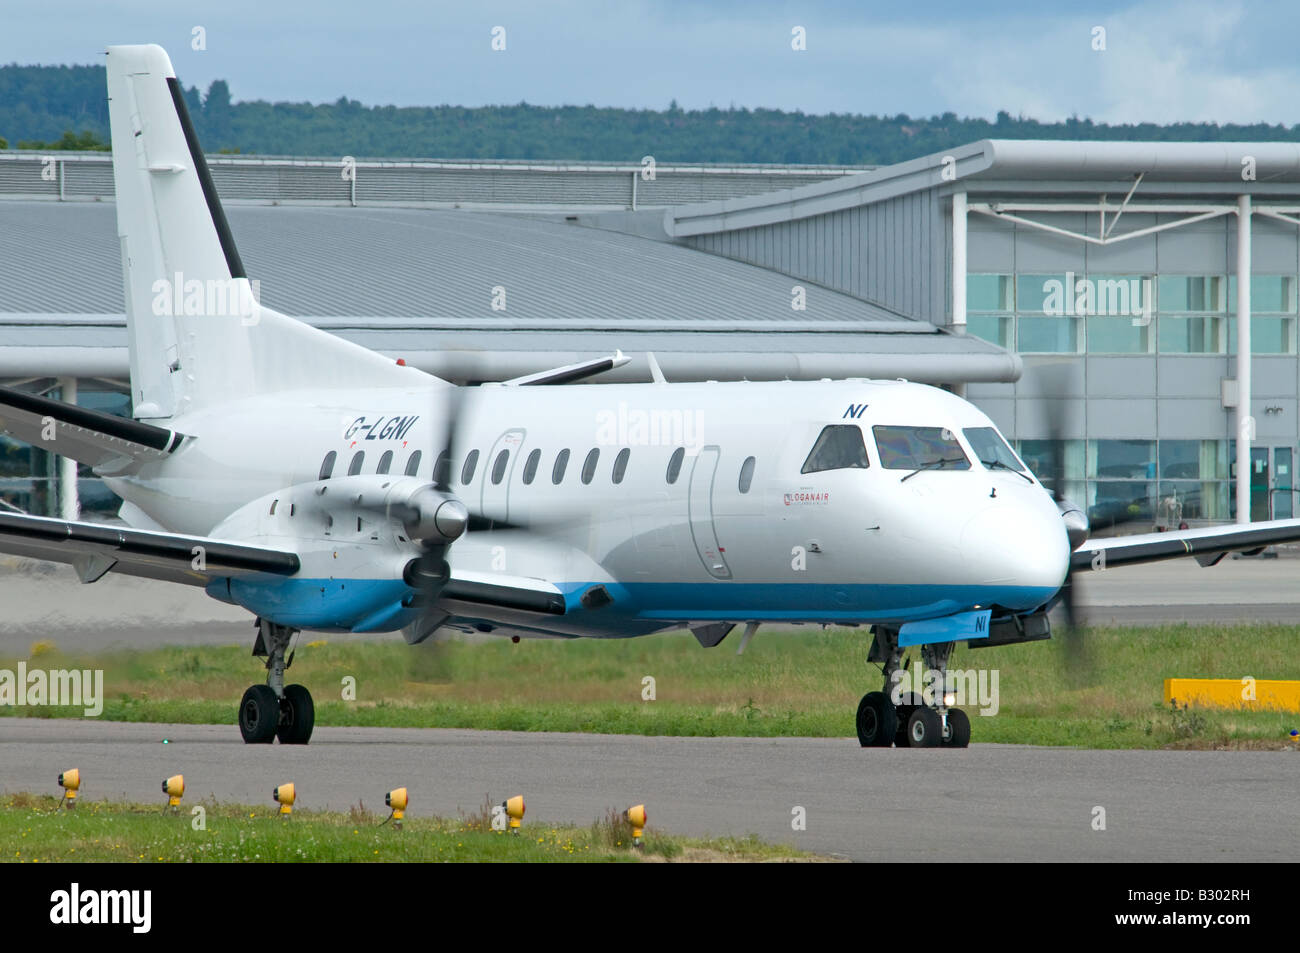 Saab SF 340B Turbo Prop Passenger Aircraft owned by Flybe operated by Loganair at Inverness Airport Stock Photo